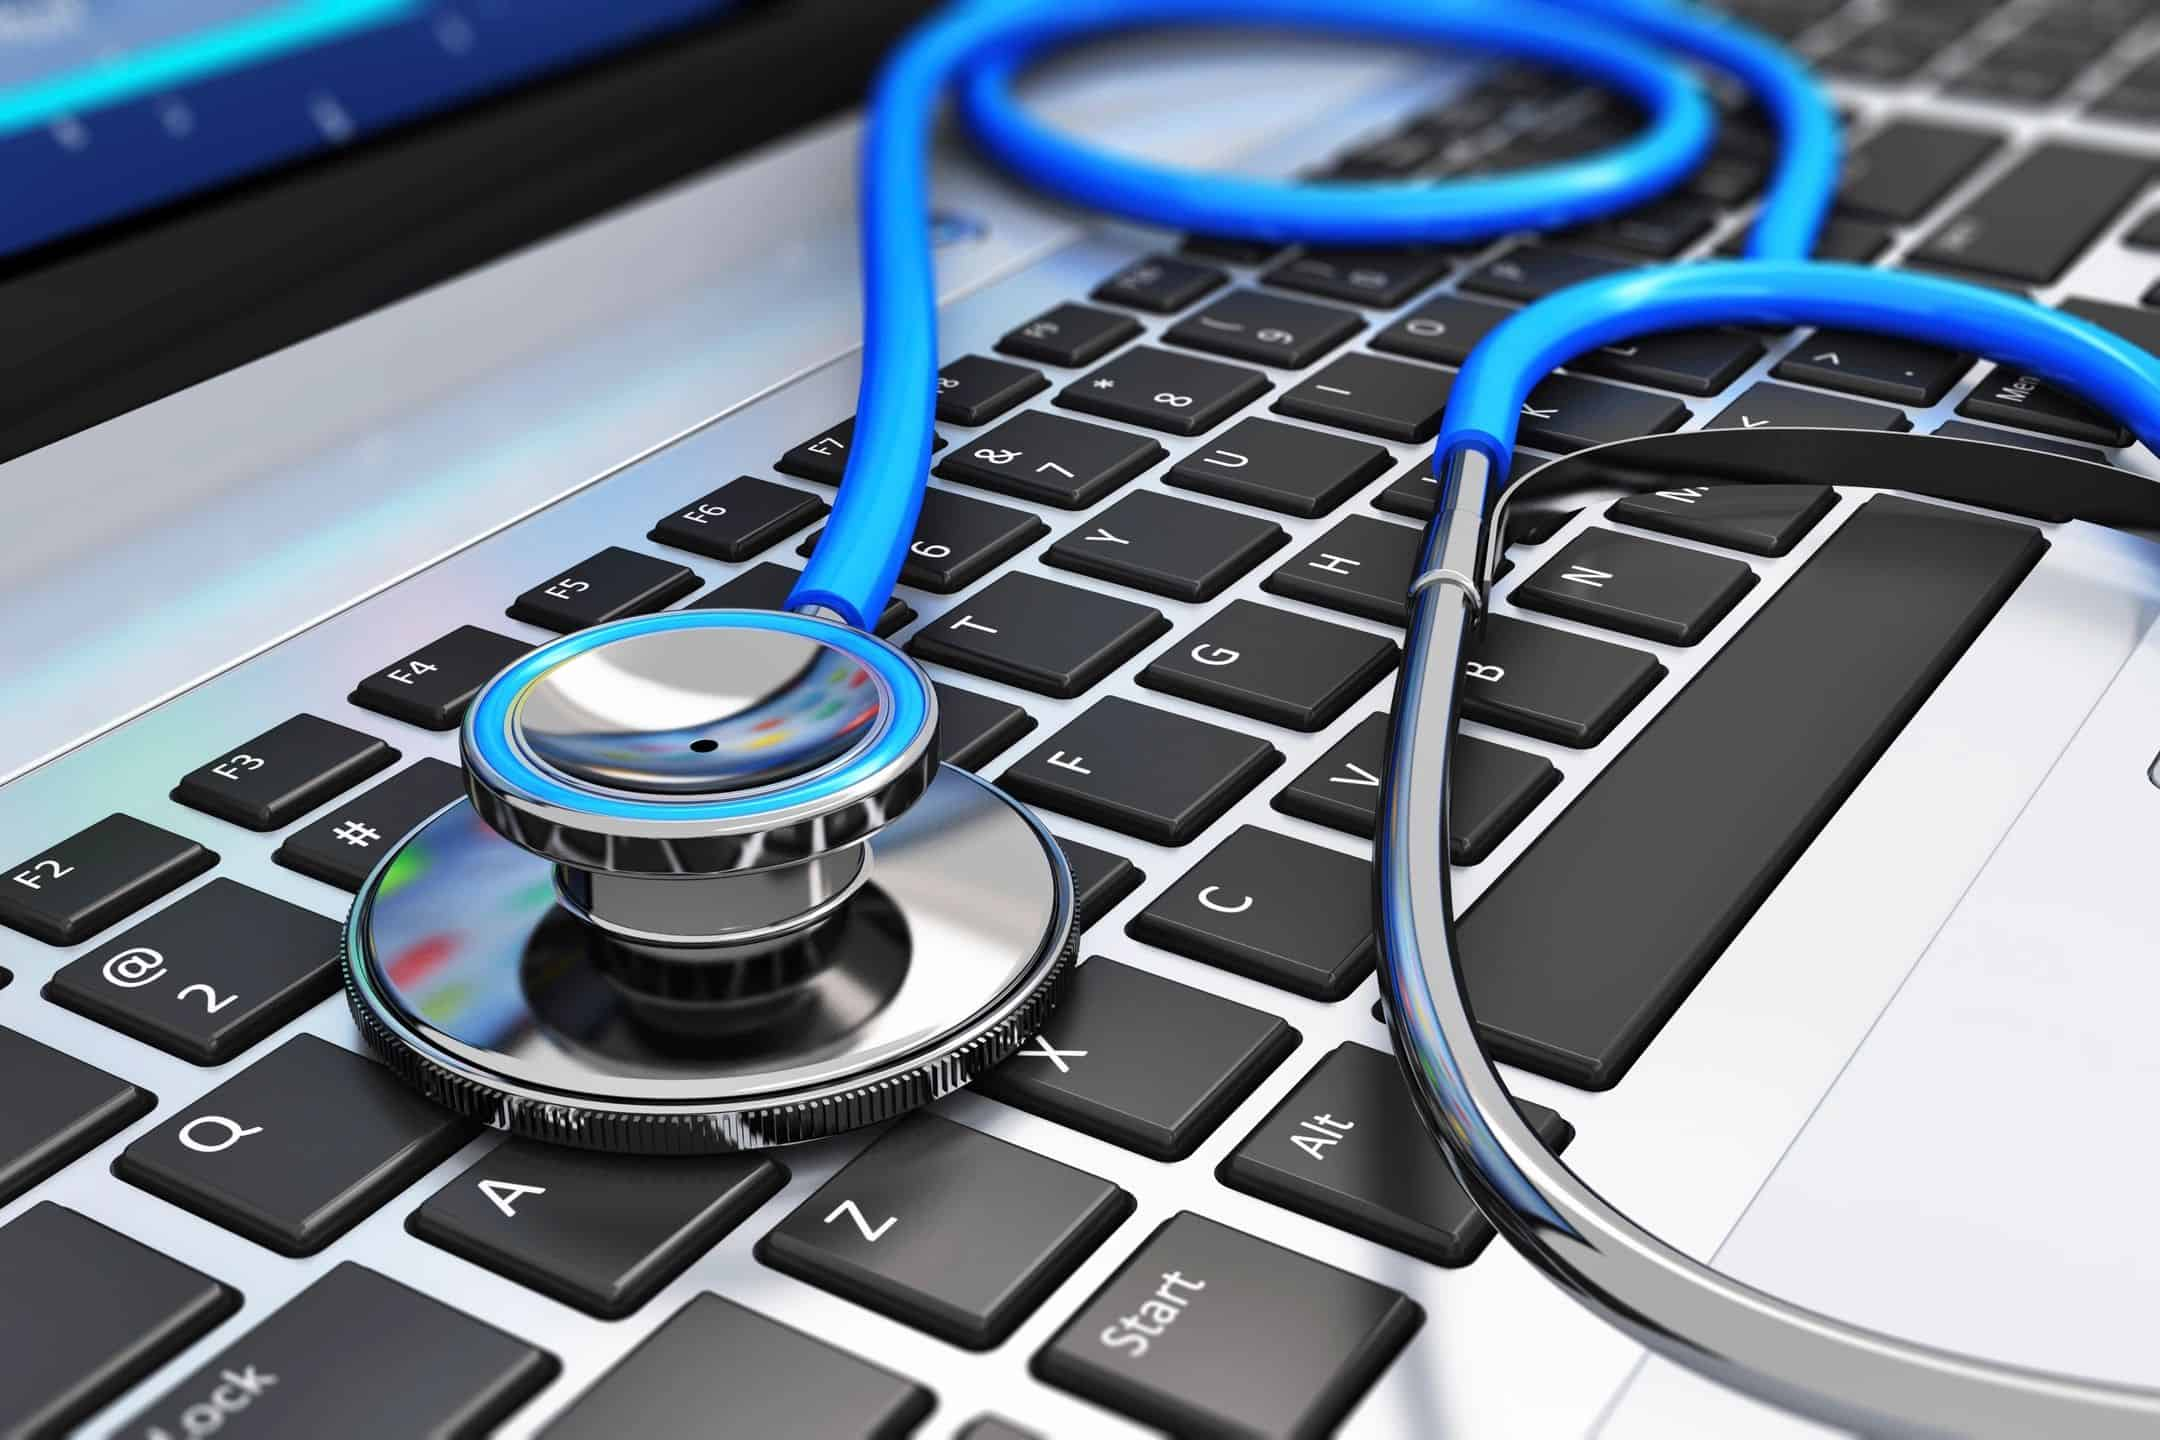 Healthcare companies use Sky Republic to secure data sharing and automation.